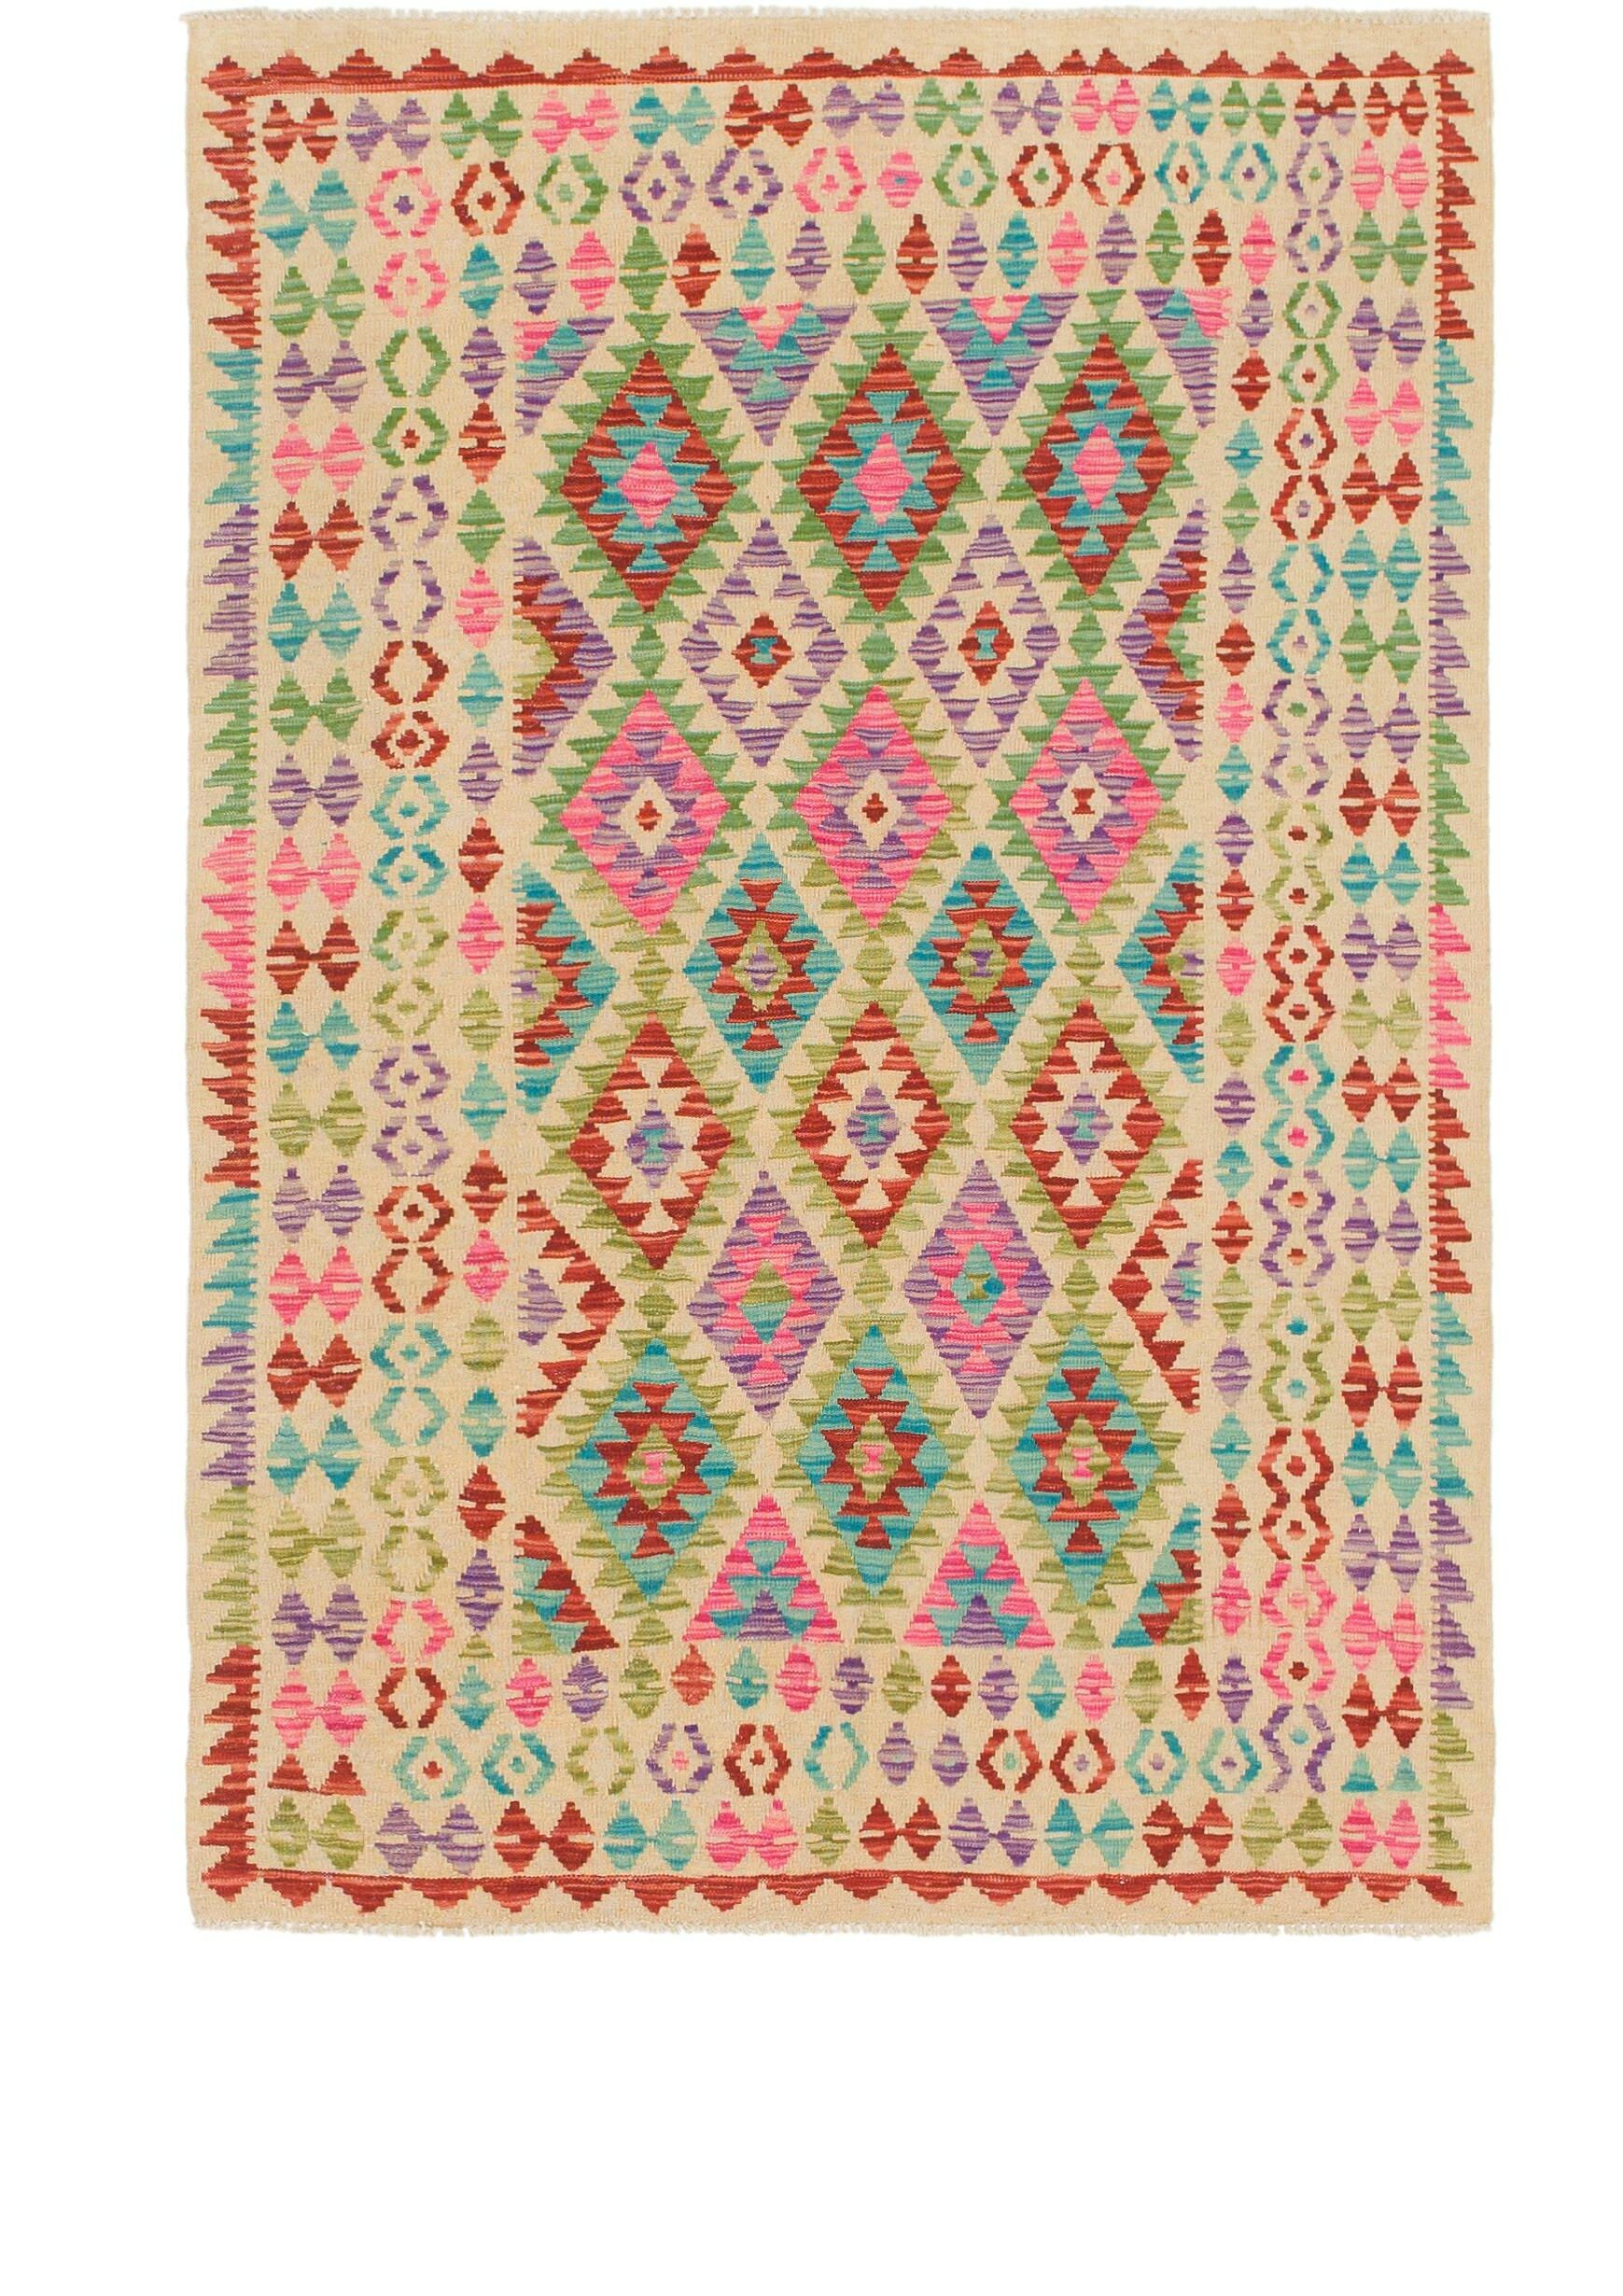 One-of-a-Kind Doorfield Hand-Knotted Wool 4' x 6' Beige/Green/Brown Area Rug